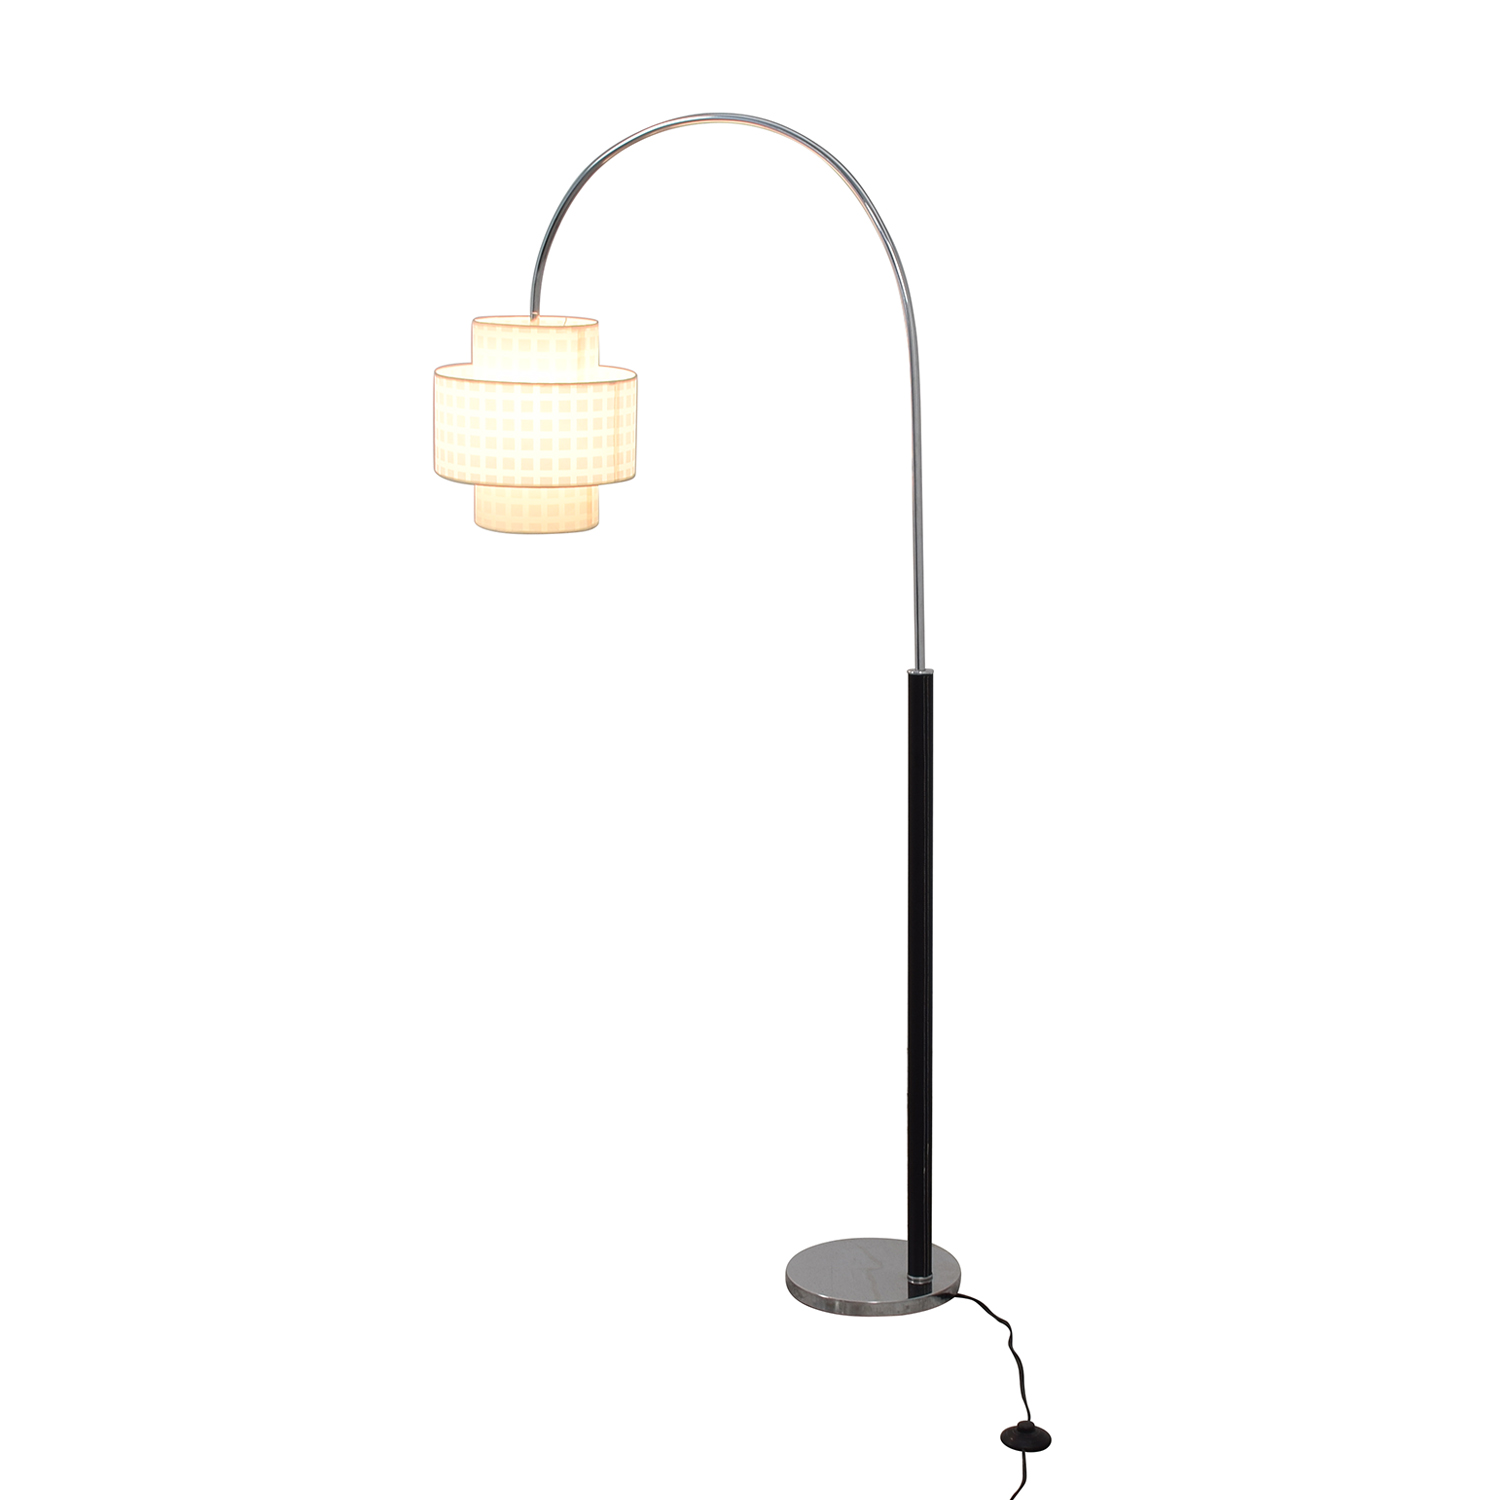 Standing Floor Lamp with Two Section Shade second hand